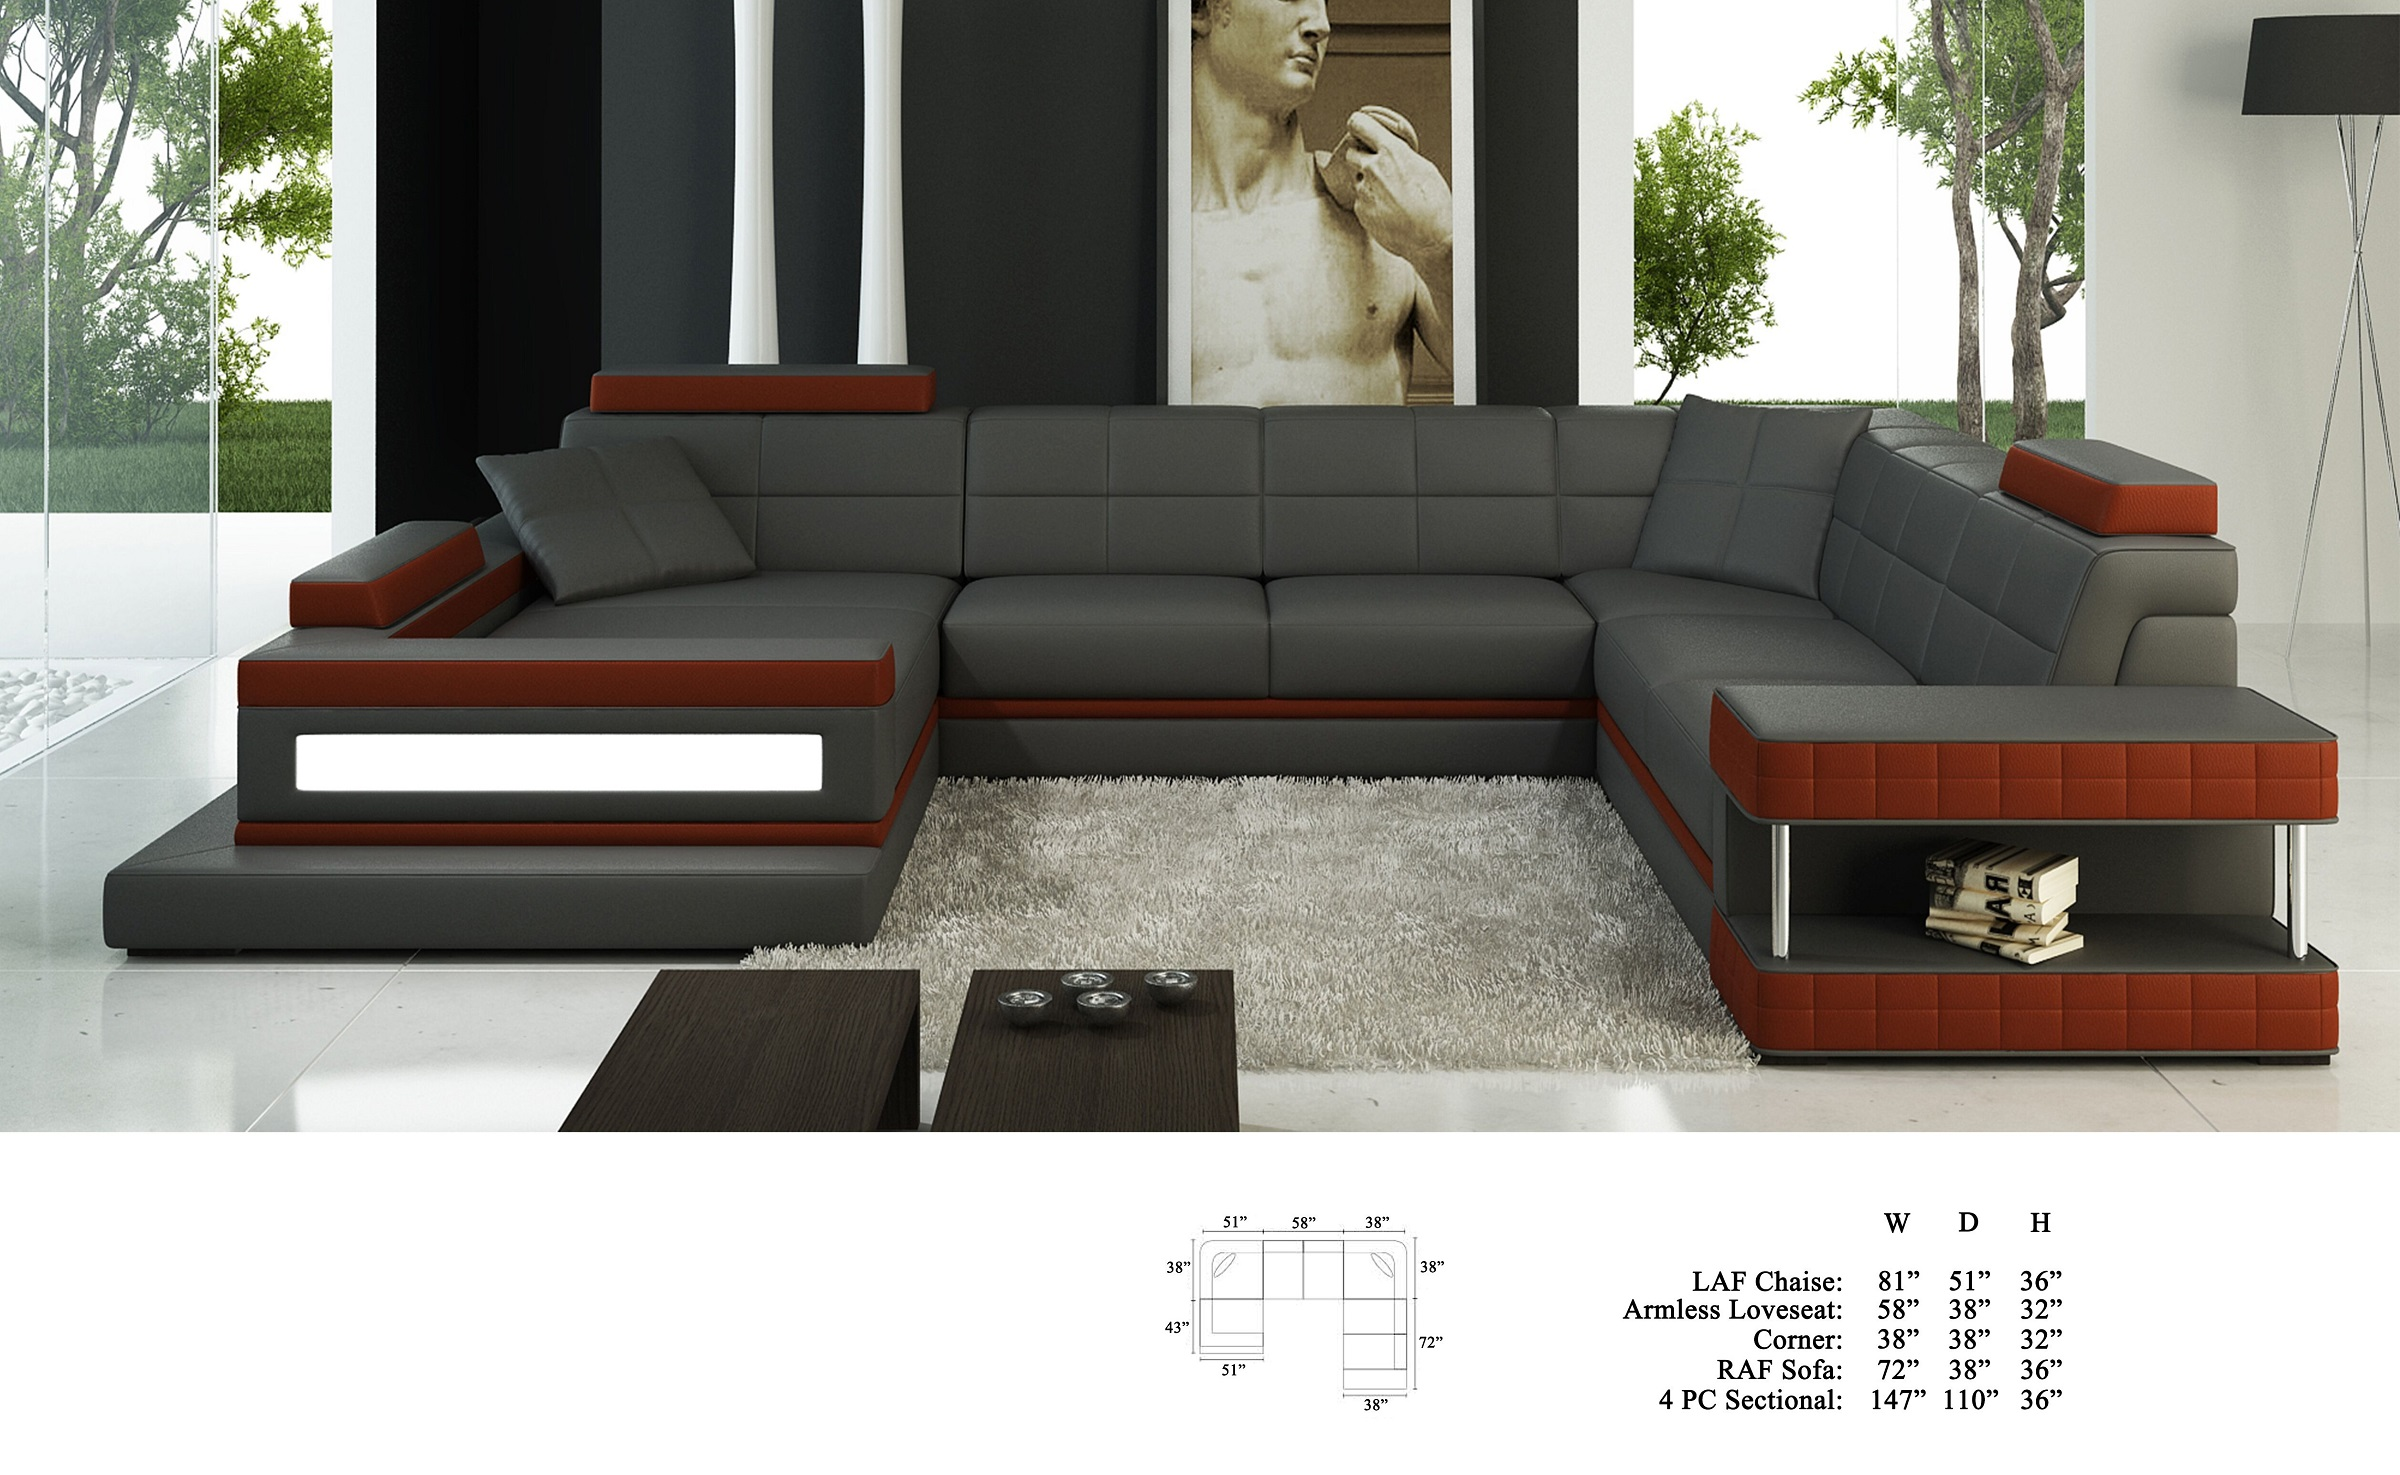 Living Room Furniture Modern Classic Large Sectional Sofa Family Relax Couch Maroon Grey Bonded Leather Chaise Loveseat Corner Couch Walmart Com Walmart Com